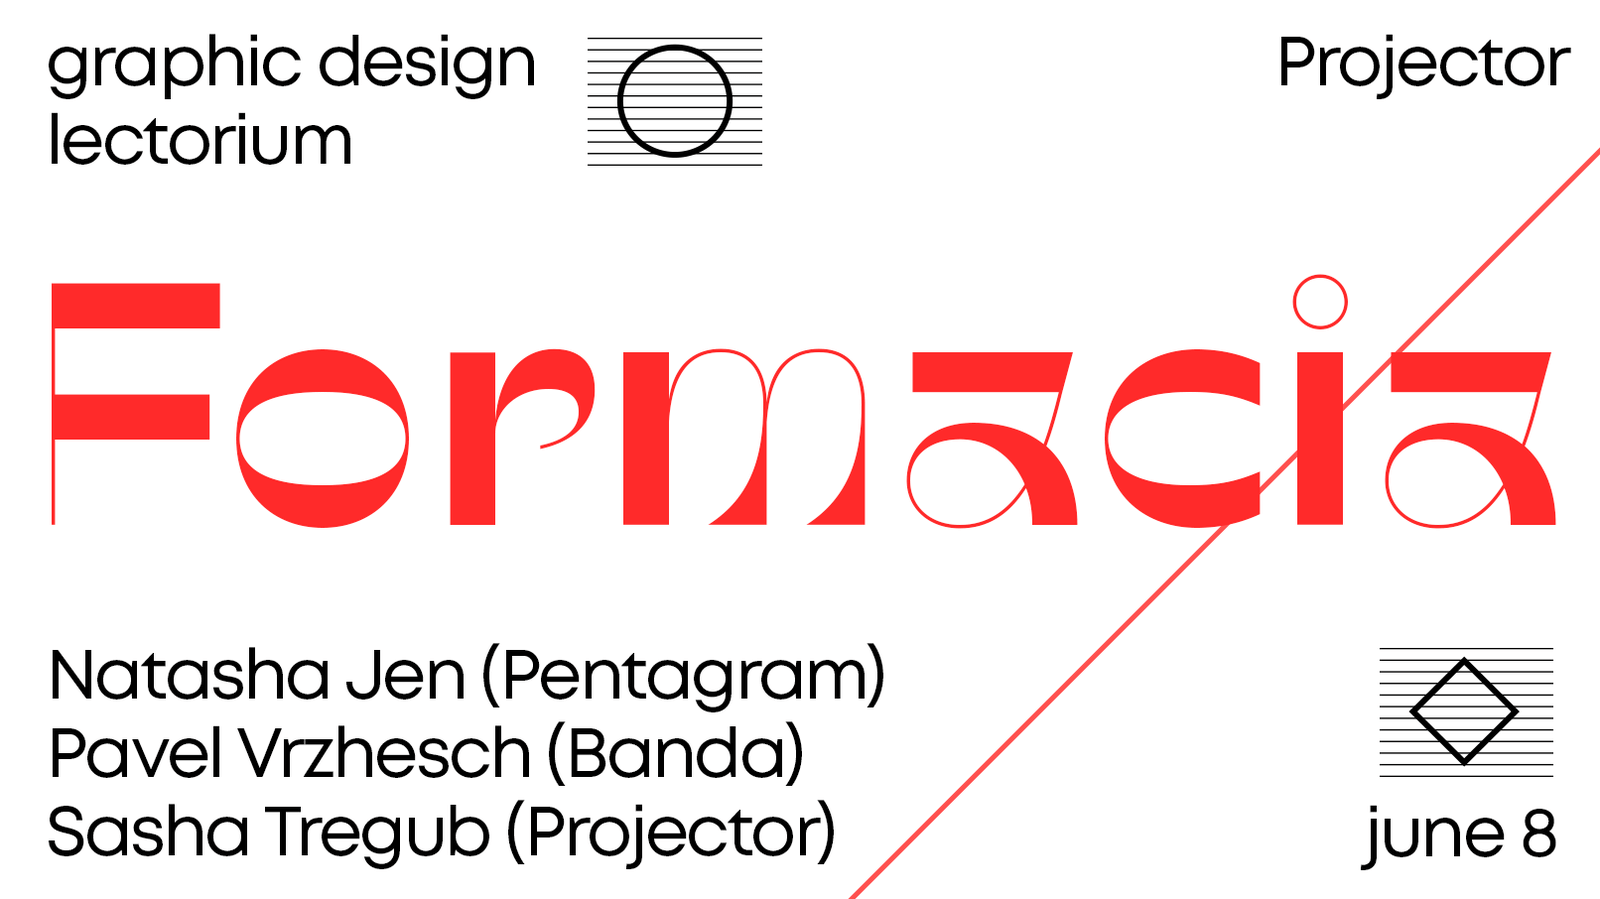 Formacia — graphic design lectorium